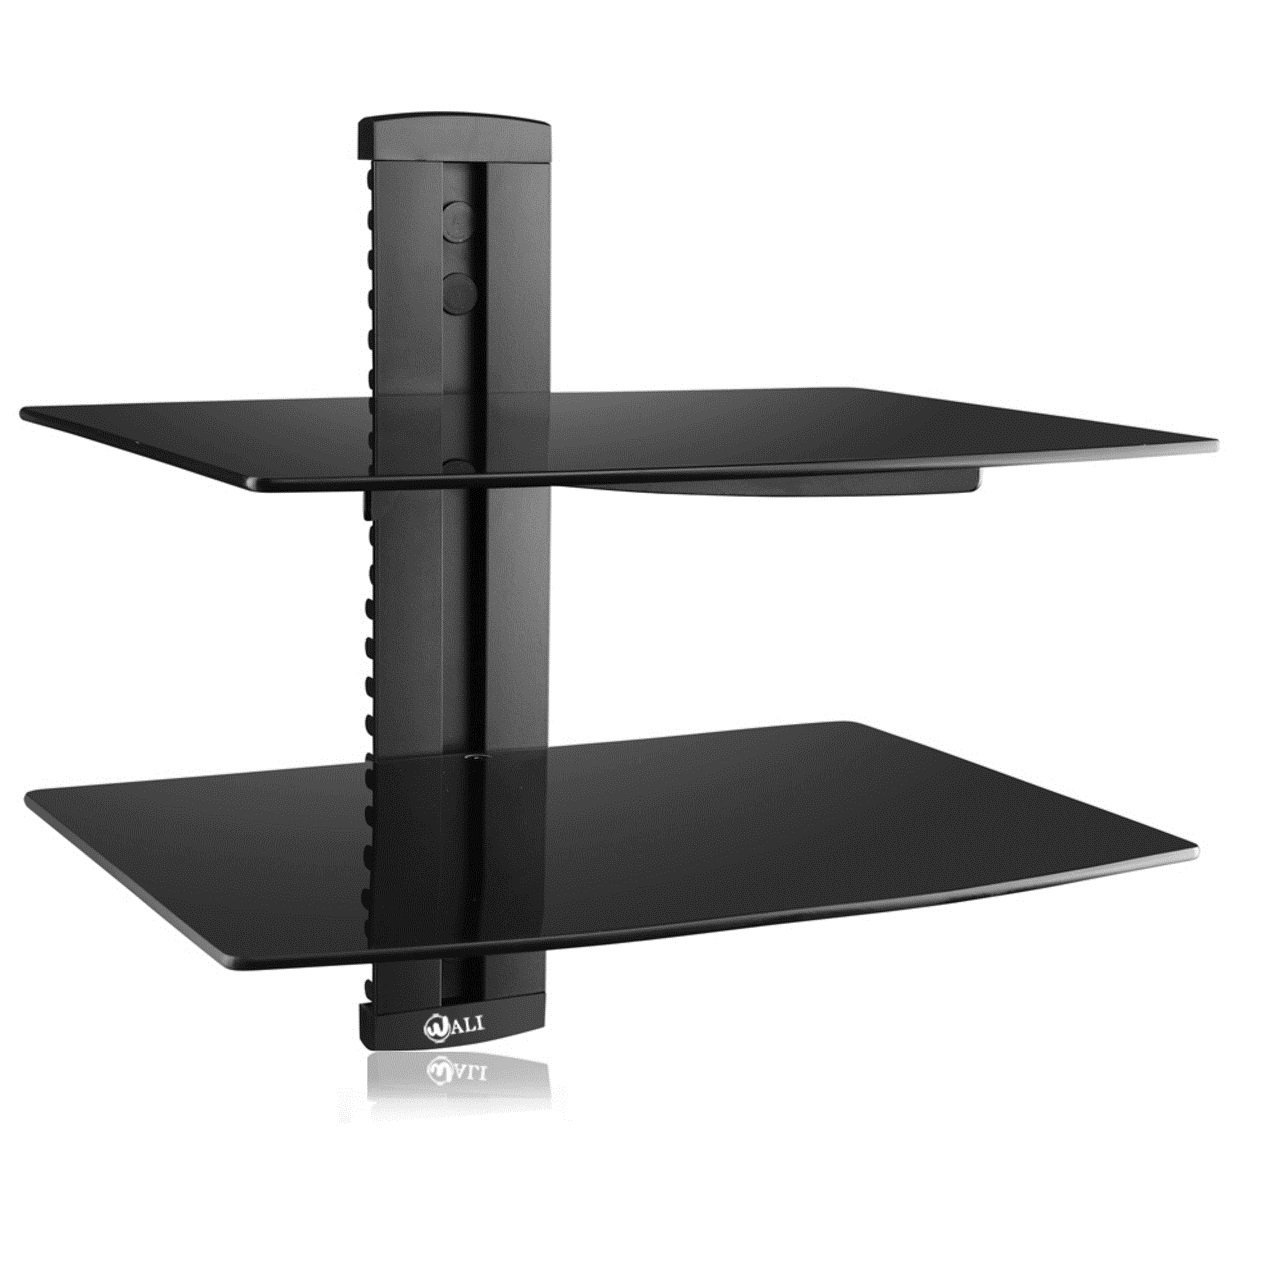 Floating Shelf With Strengthened Tempered Glass For Dvd Players Regarding Glass Shelf For Dvd Player (#7 of 12)